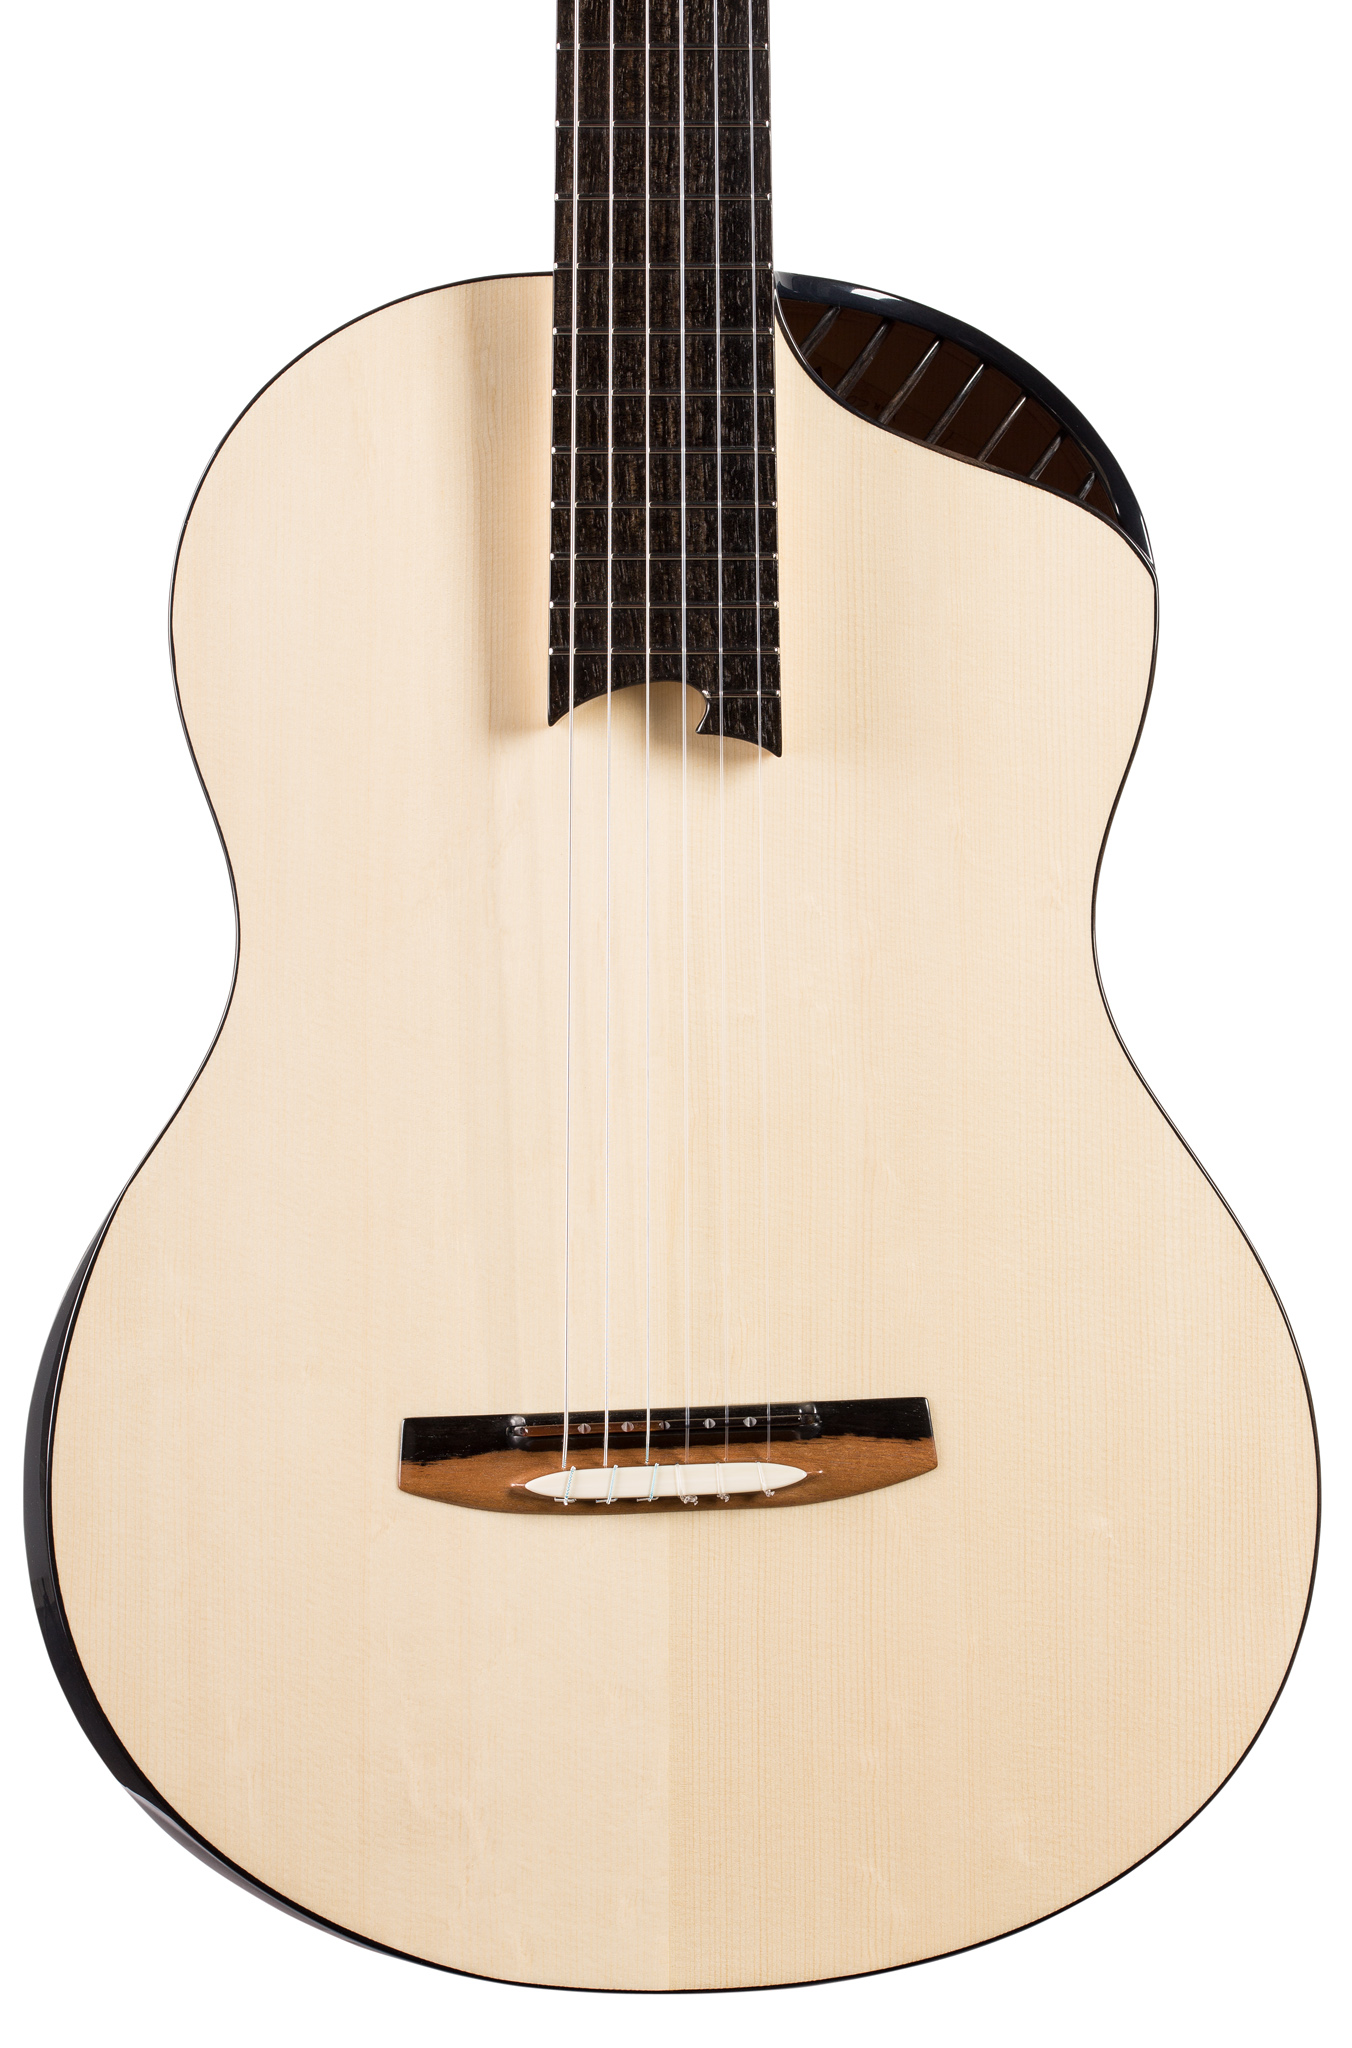 Spruce guitar with soundport